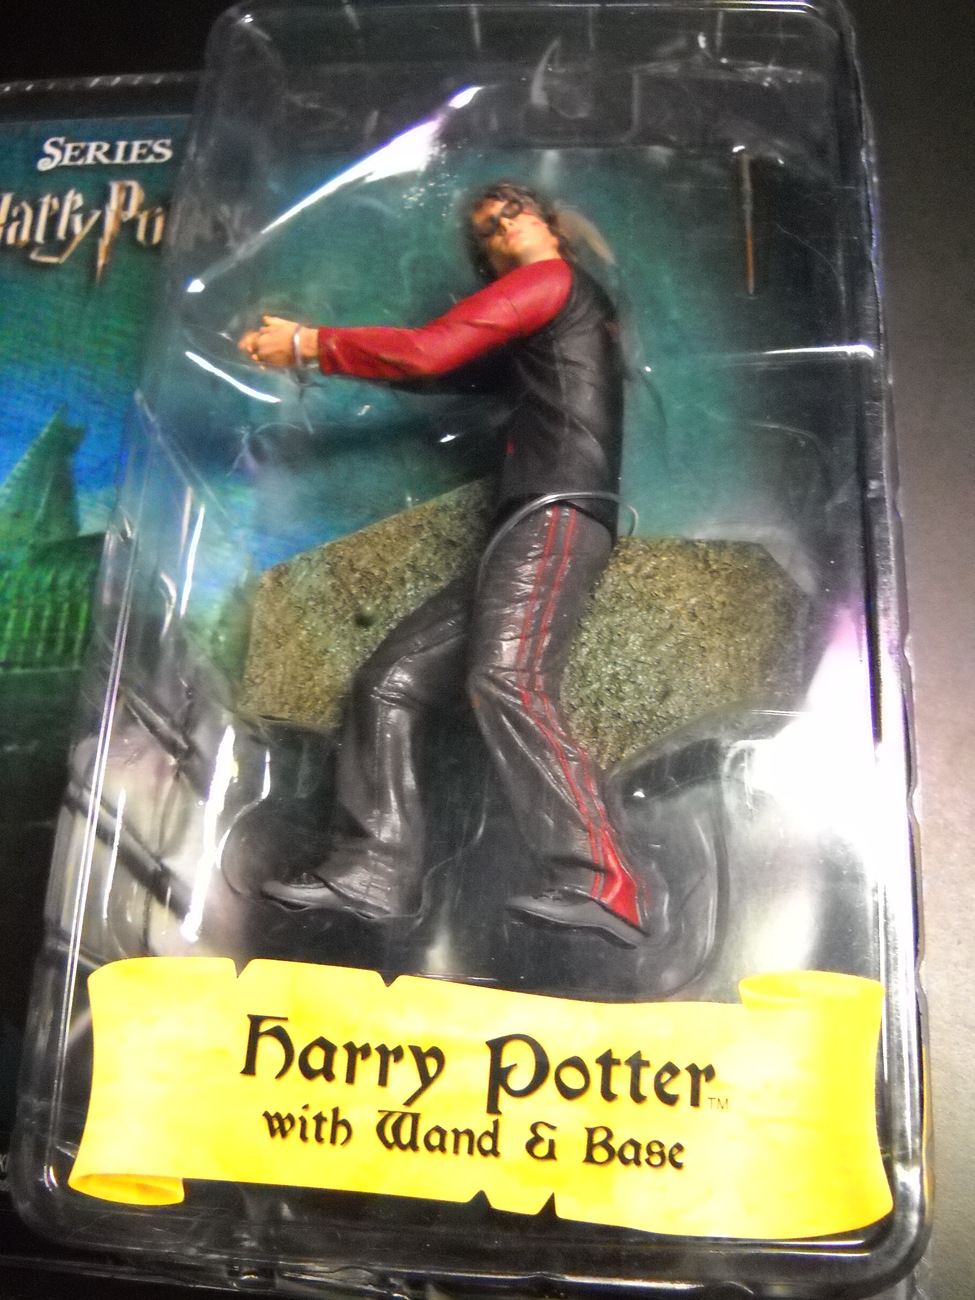 Harry Potter with Wand and Base Series One Reel Toys Neca Series Sealed on Card